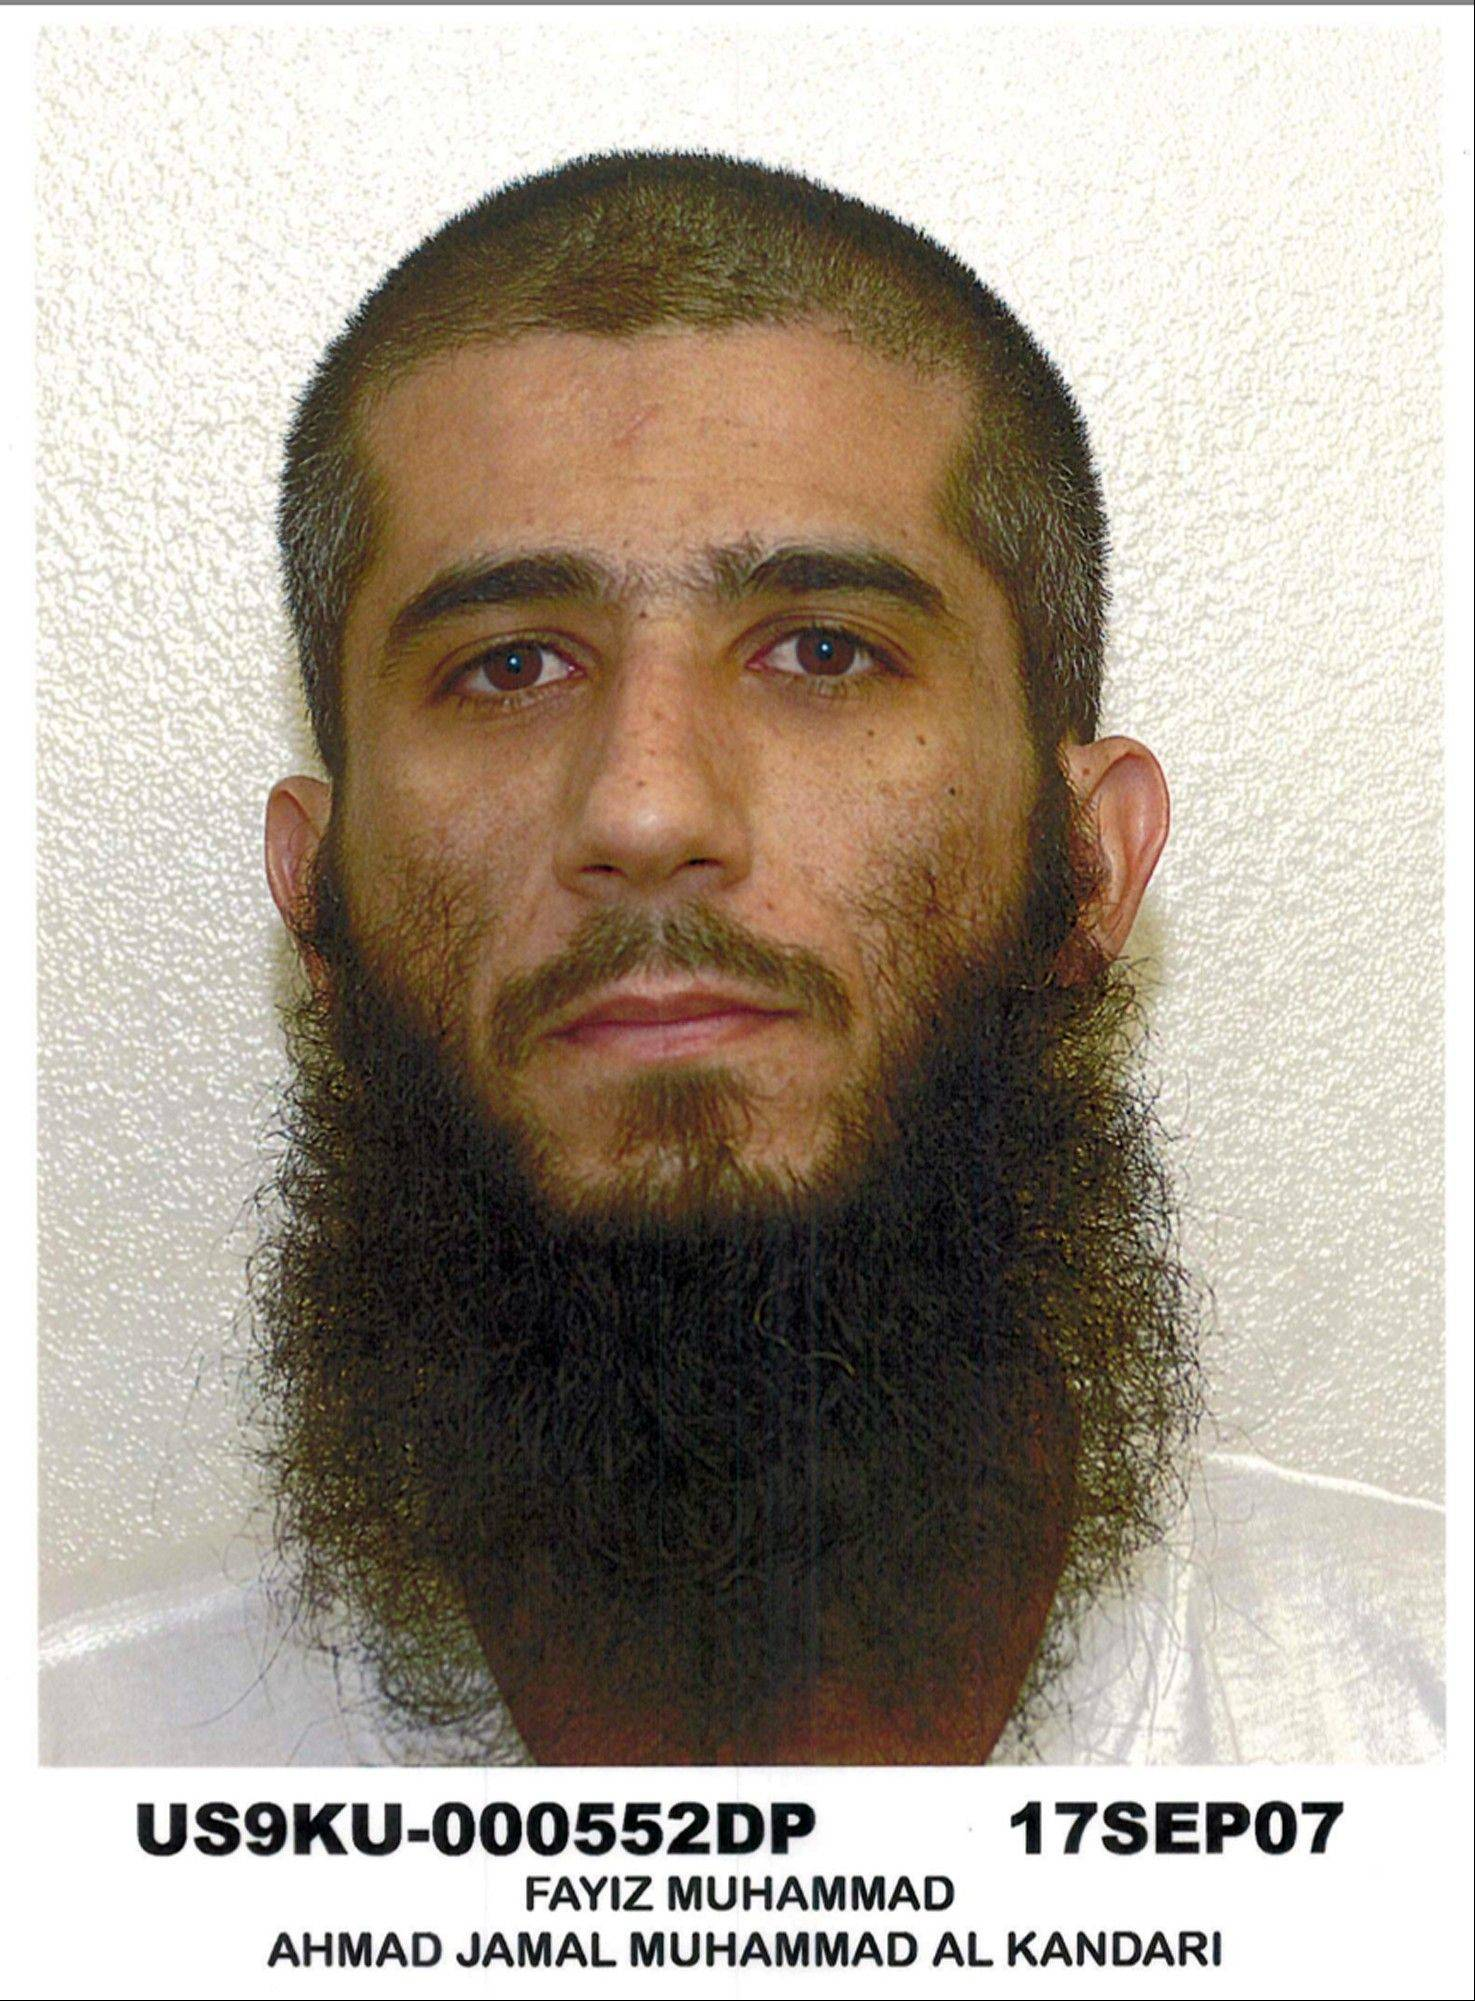 Guantanamo detainee Faez al-Kandari, 36, is a Kuwaiti who has been held for more than 11 years at the Guantanamo Bay prison.